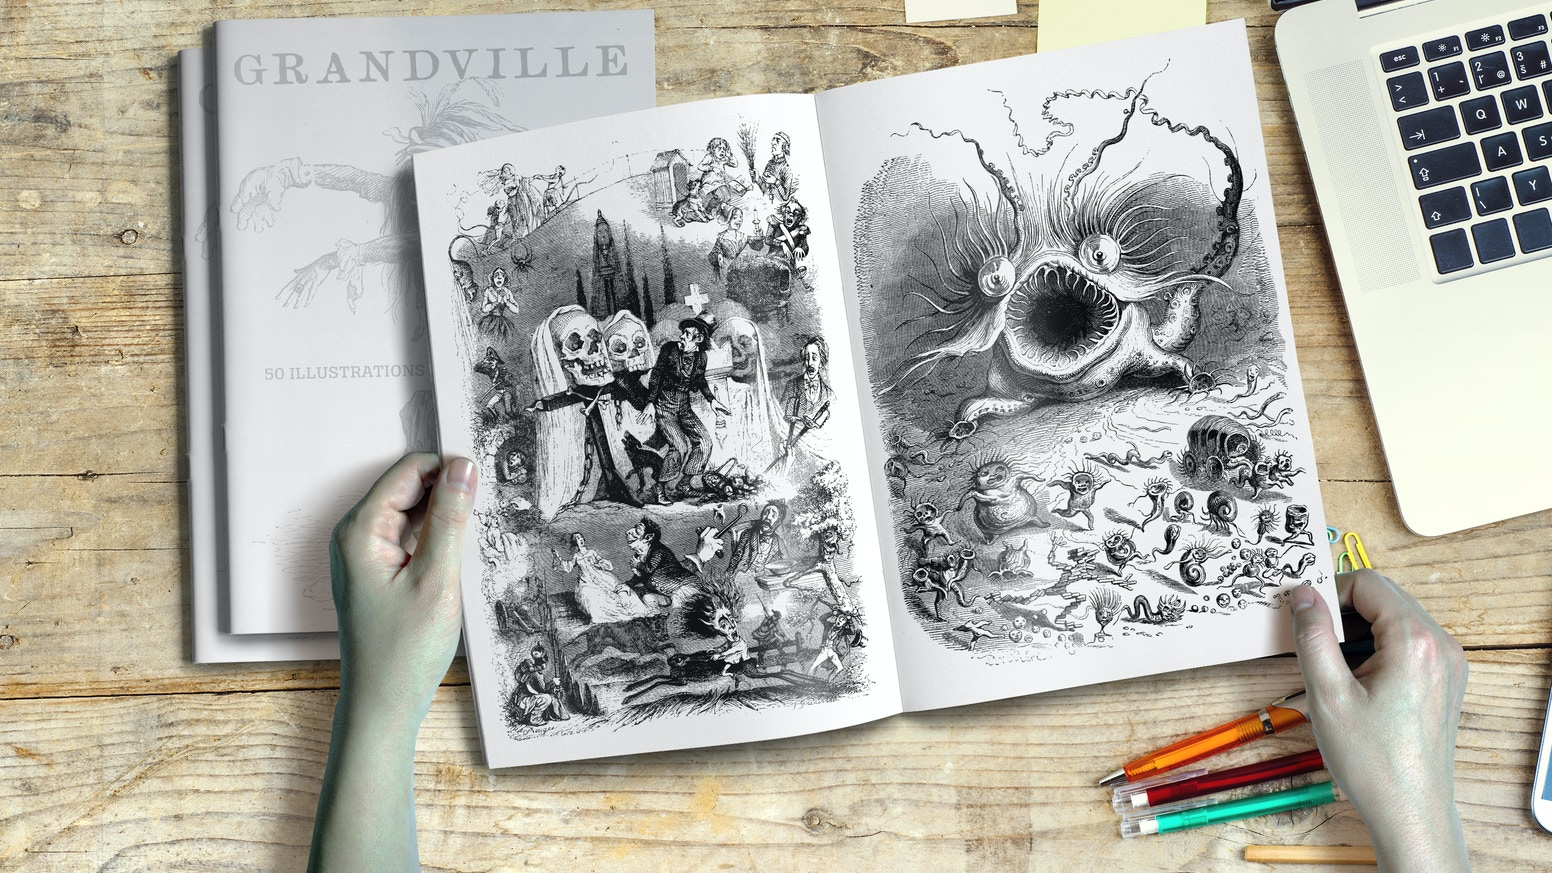 The unbelievable surreal and fantastic Illustrations of J.J. Grandville 1803-1847 Now available as Hardcover Book in a Kickstarter Relaunch!